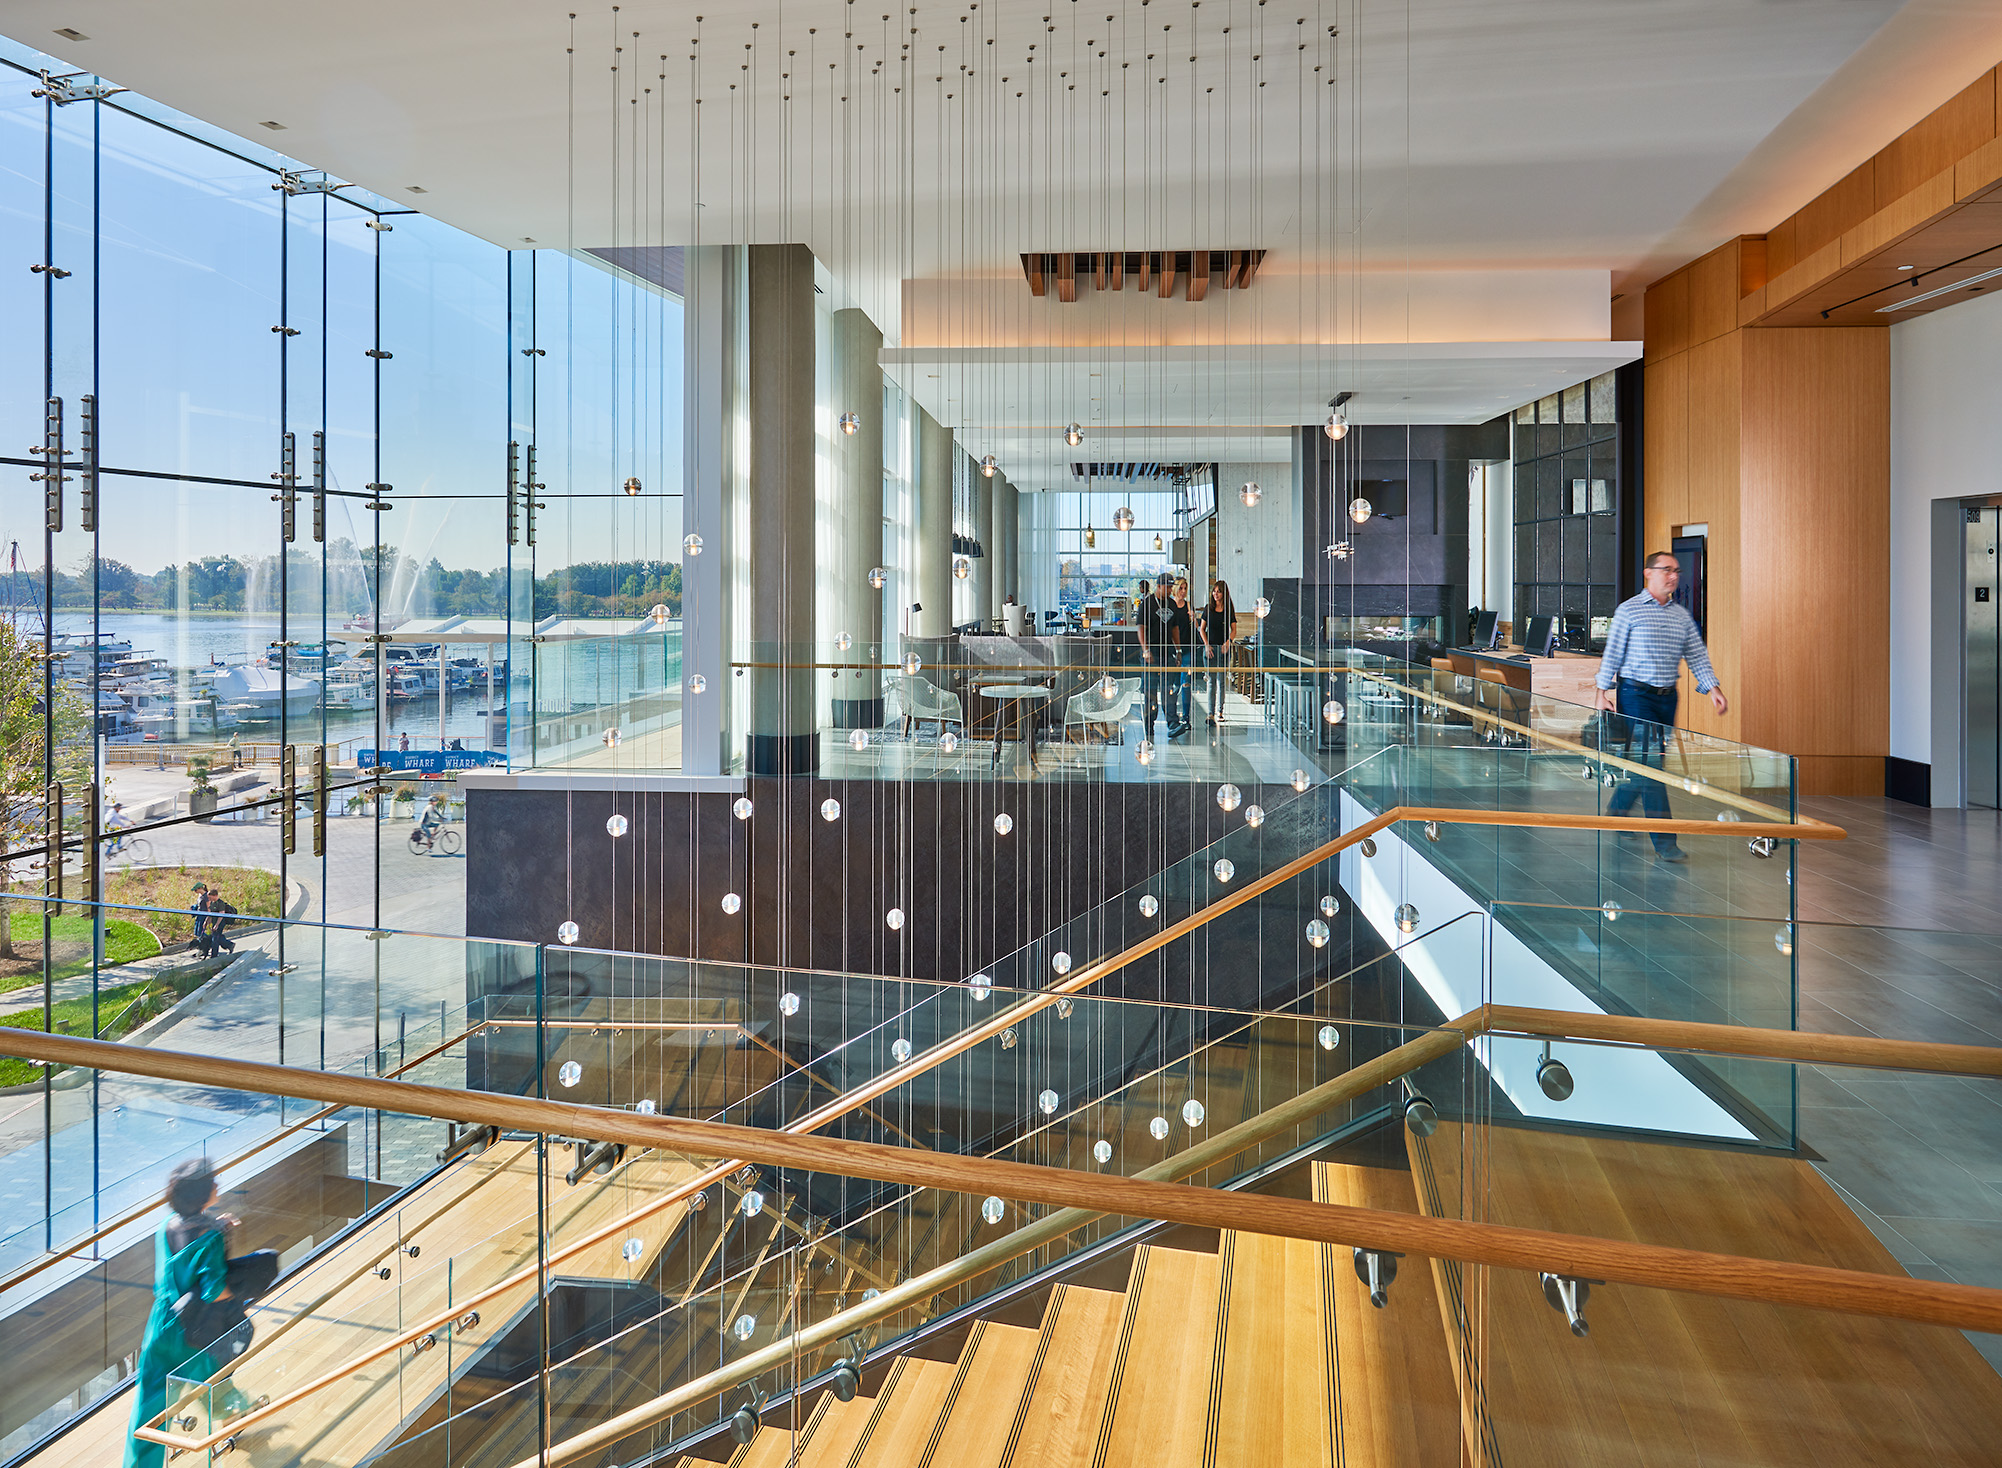 Hotel lobby with tall glass windows and wide staircase